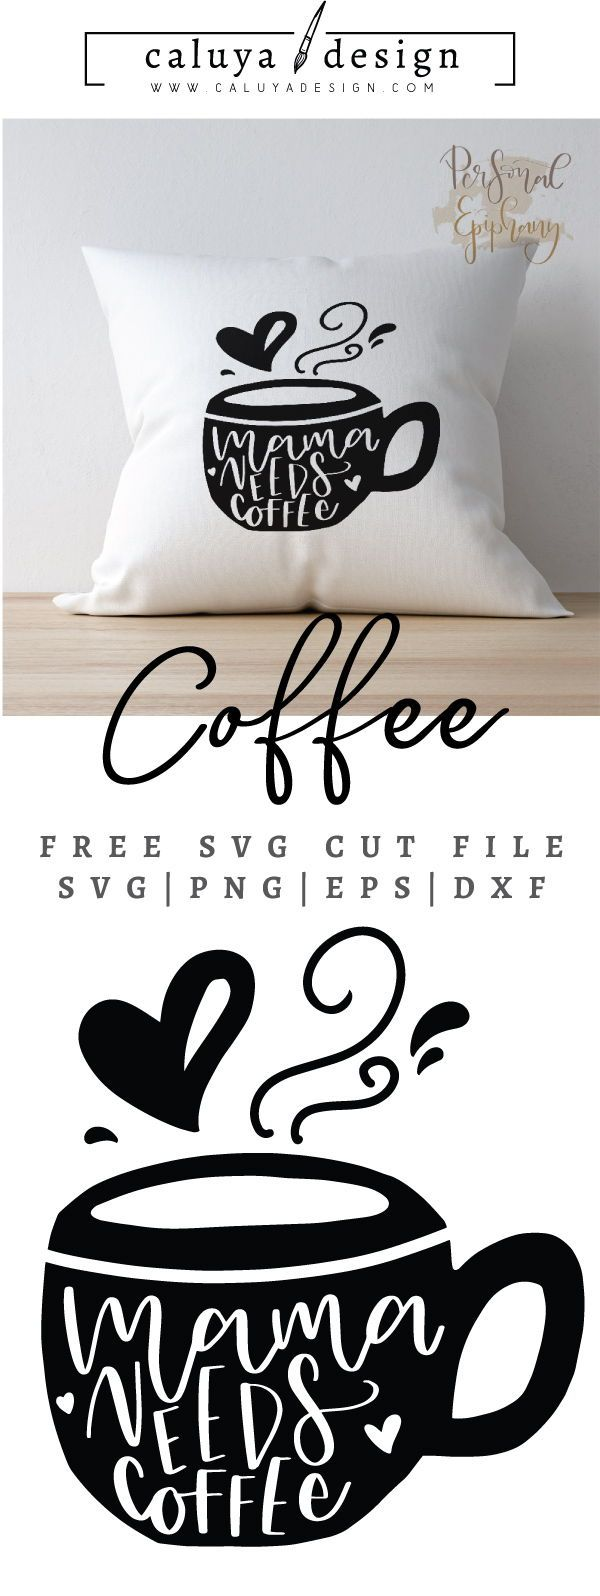 FREE mom needs coffee cut file, Printable vector clip art download. Free printable clip art mom needs coffee . Compatible with Cameo Silhouette, Cricut explore and other major cutting machines. 100% for personal use, only $3 for commercial use. Perfect for DIY craft project with Cricut & Cameo Silhouette, card making, scrapbooking, making planner stickers, making vinyl decals, decorating t-shirts with HTV and more! Free SVG cut file, free mom needs coffee SVG cut file, coffee SVG, quote SVG